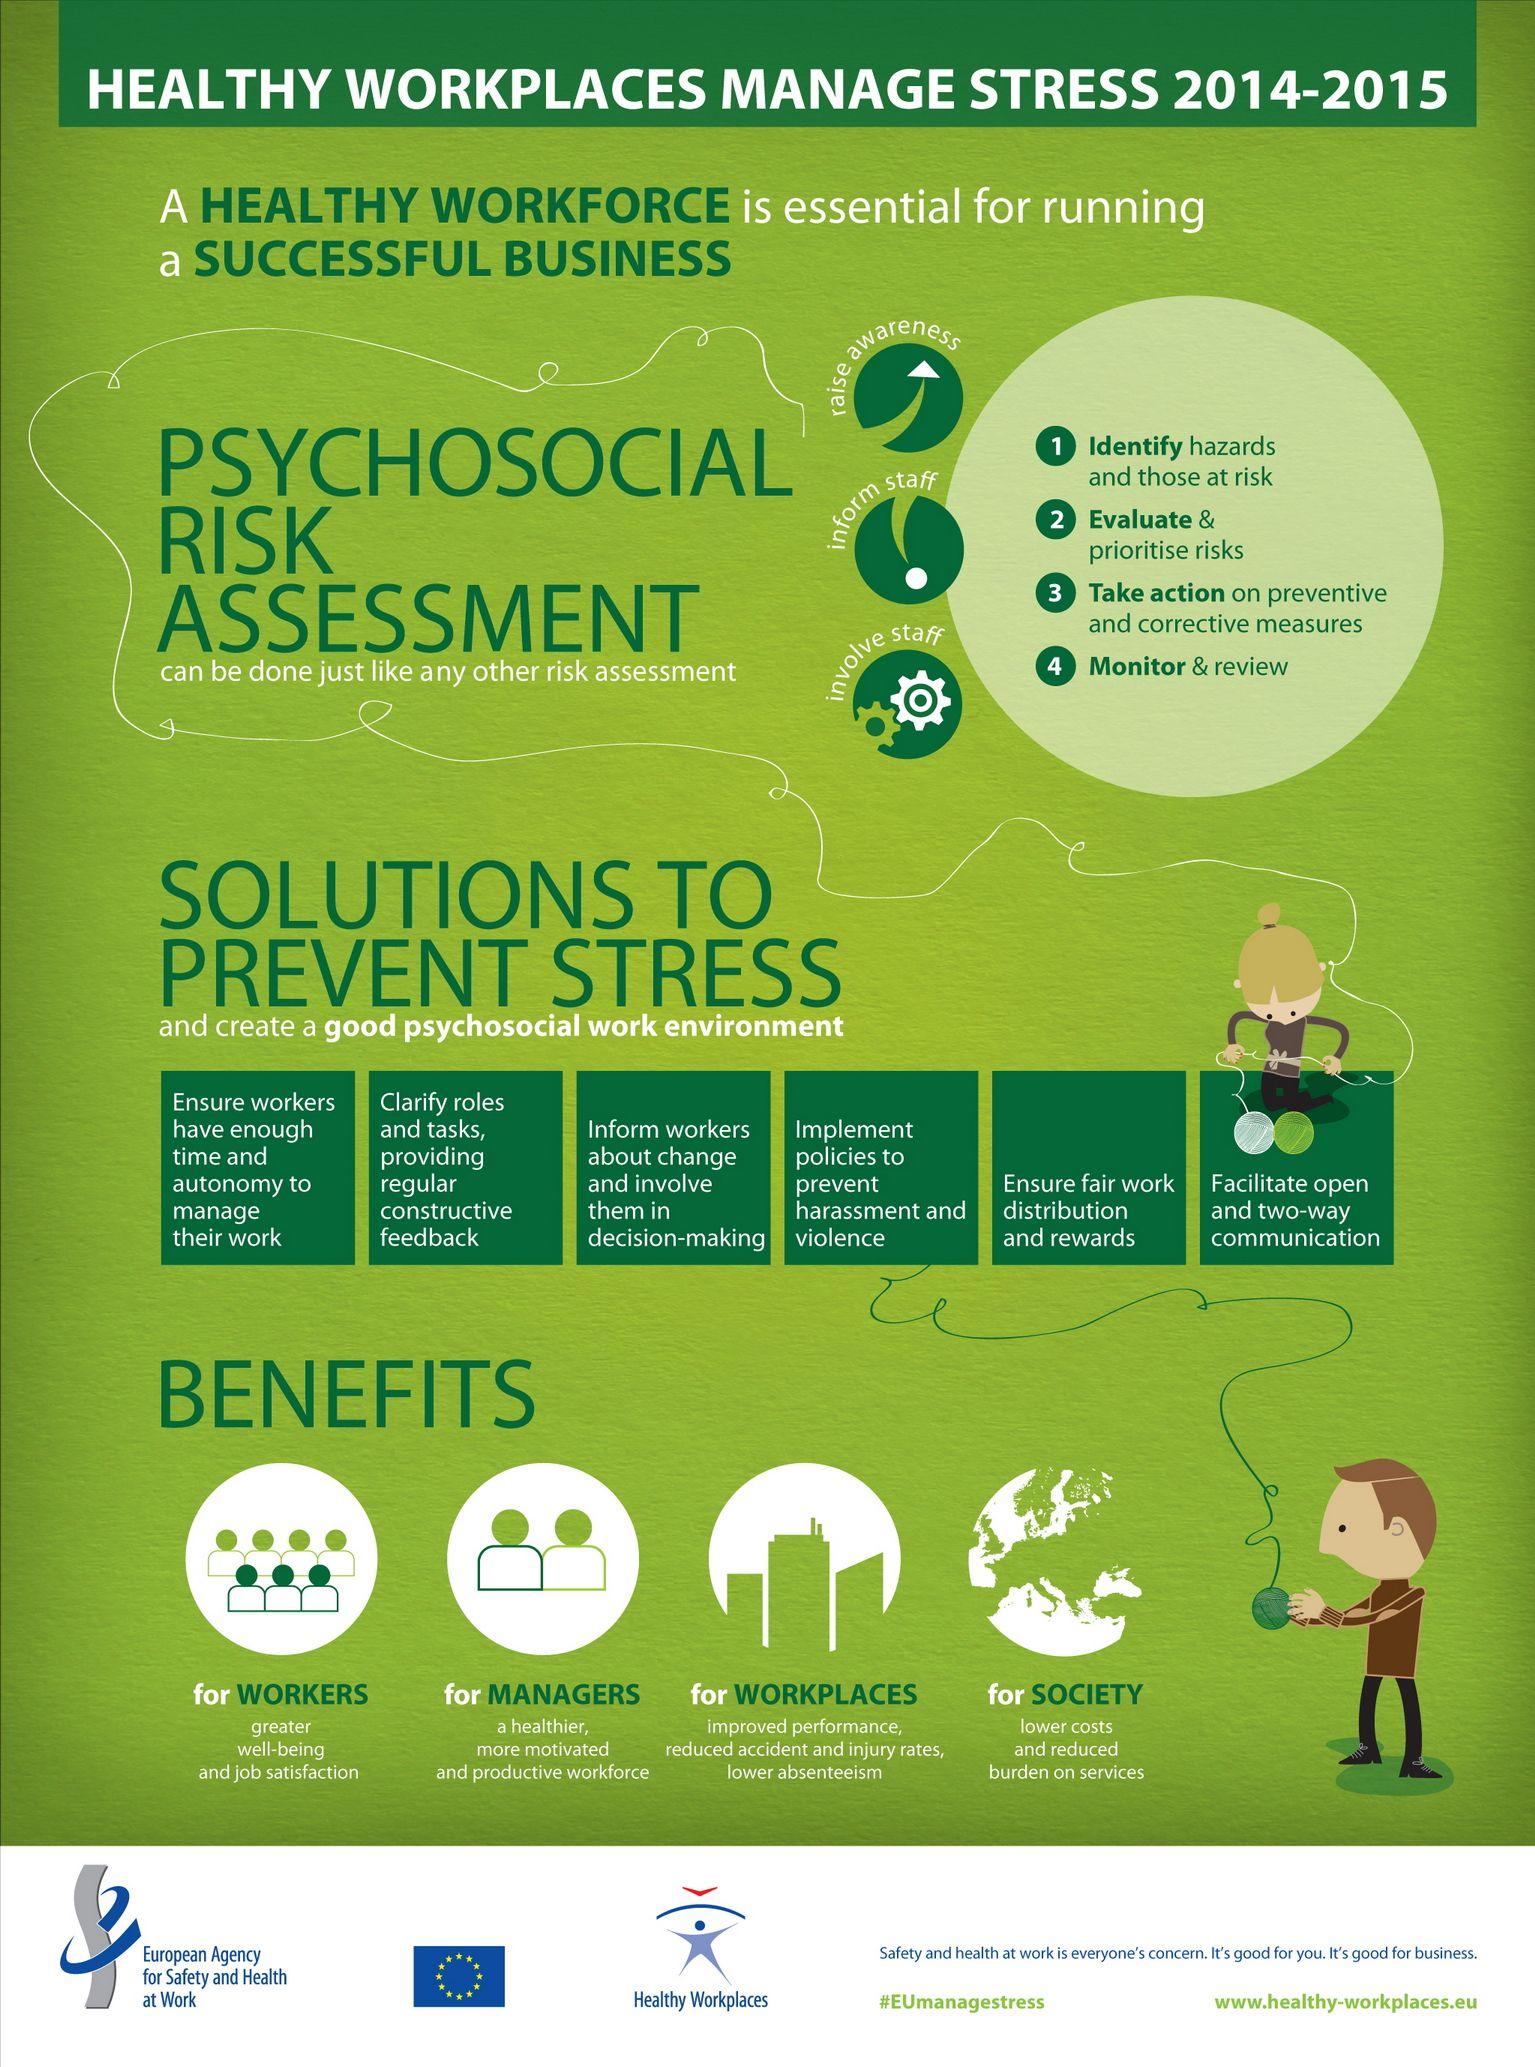 Psychosocial risks can be assessed and managed in the same